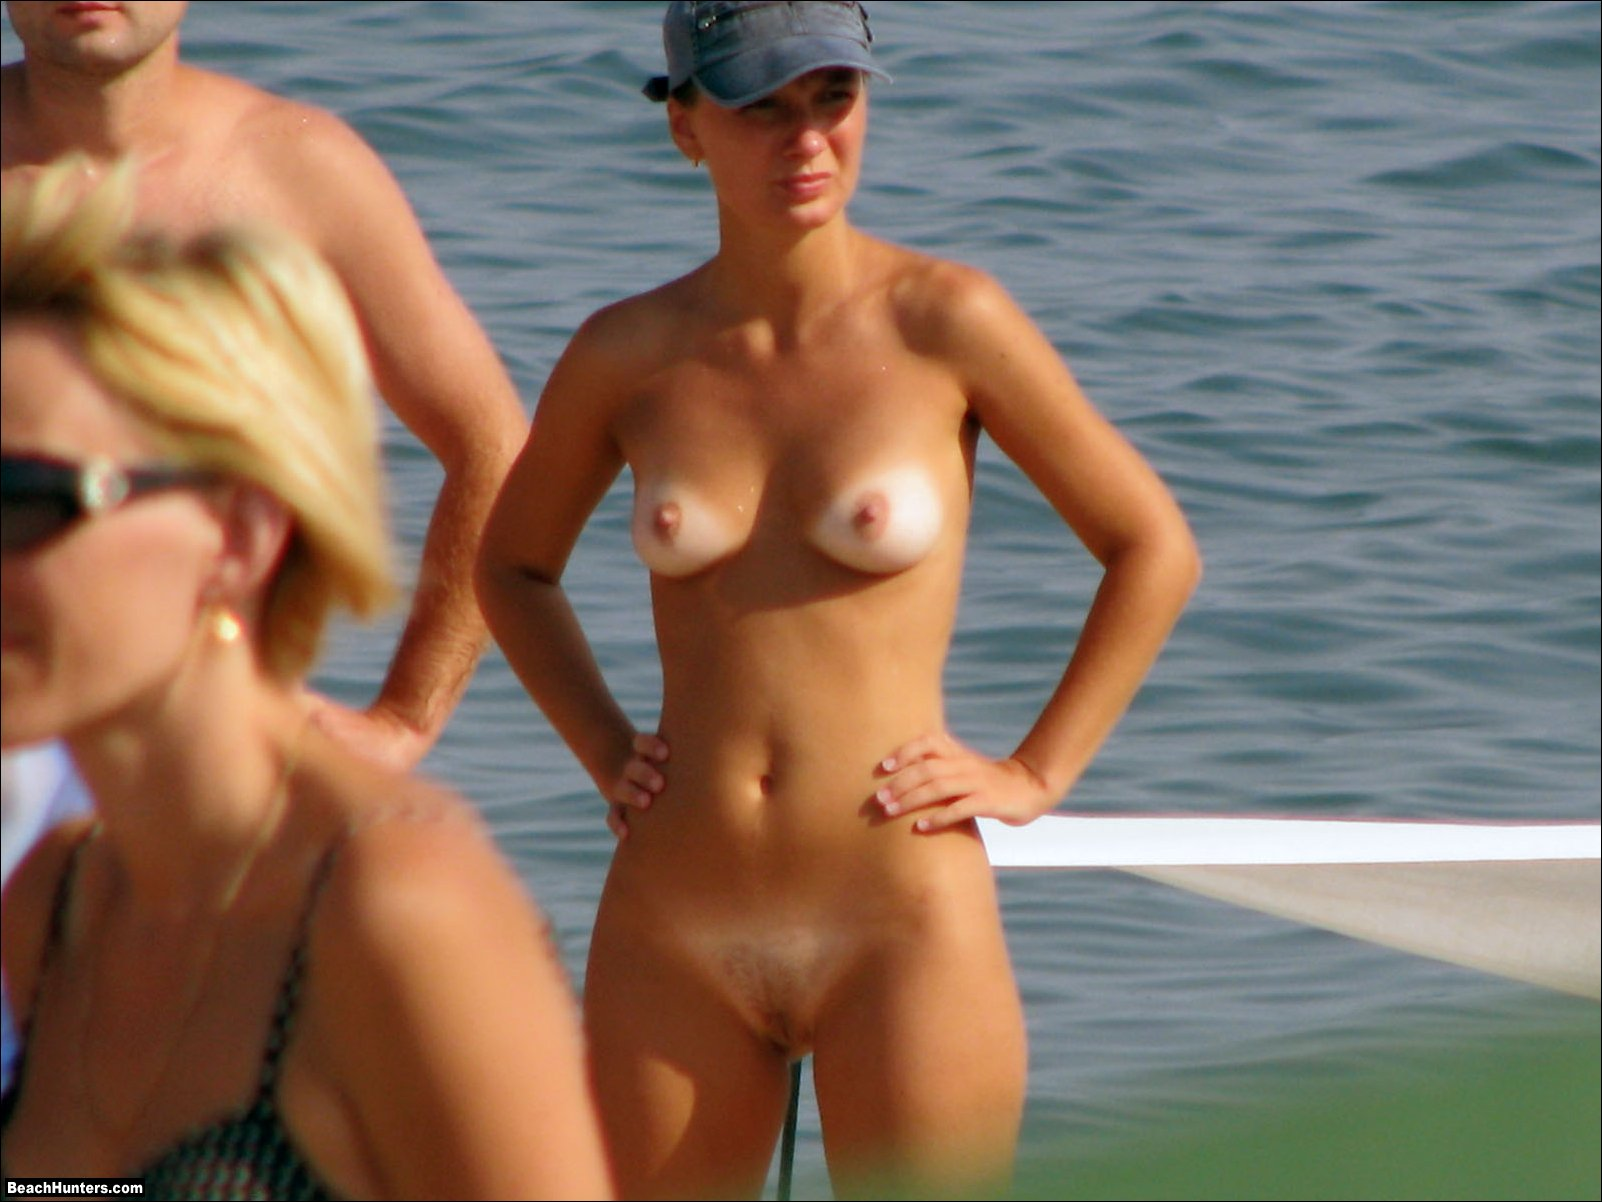 Women beach naked at